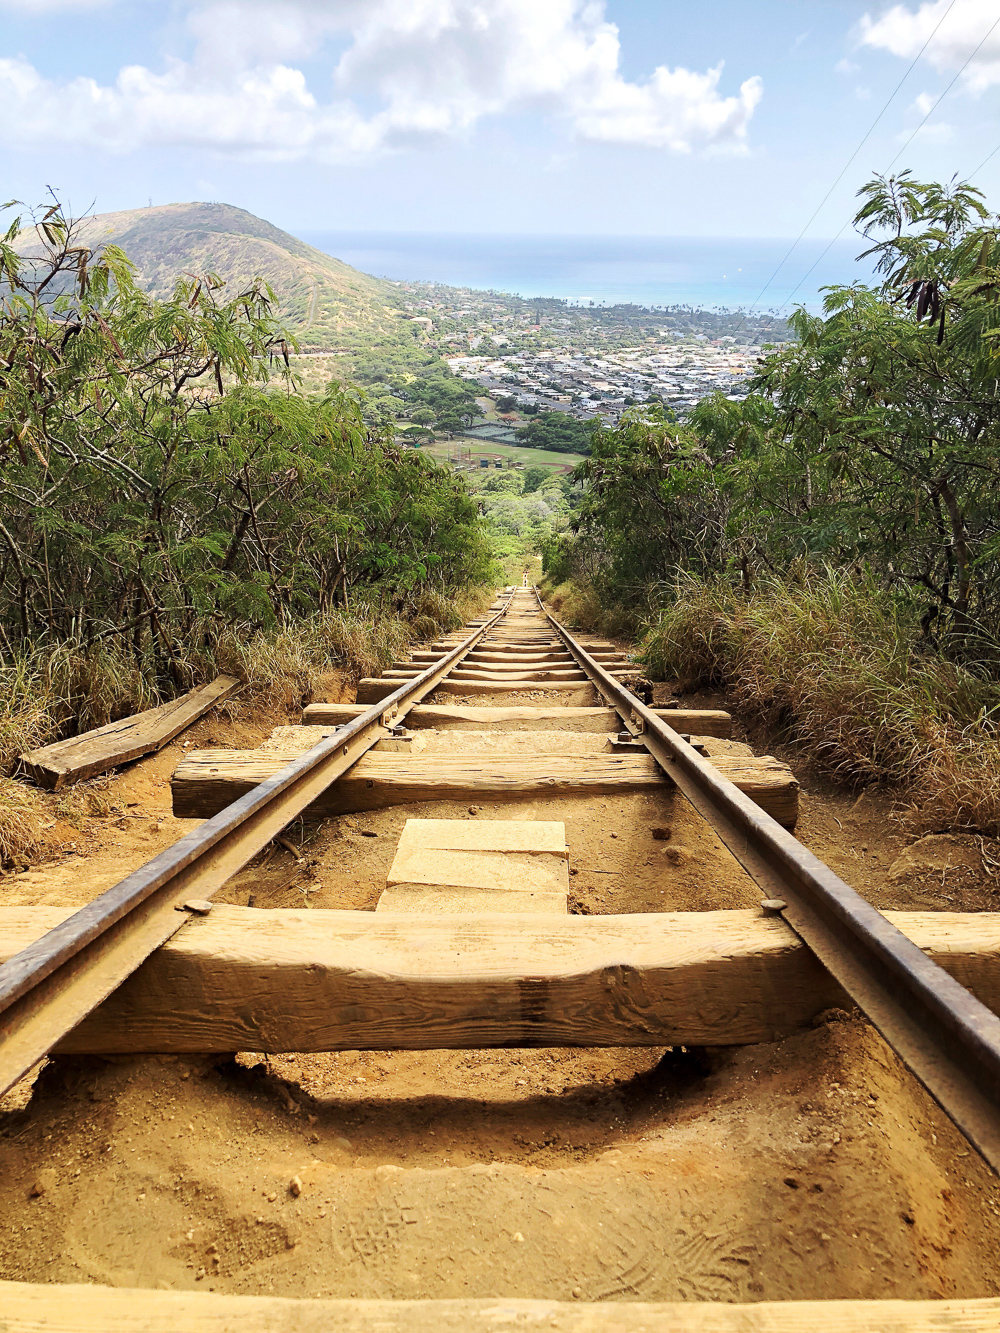 The Ultimate Oahu Travel Guide for the Adventurer - Koko Crater Railway | Sunshine Style